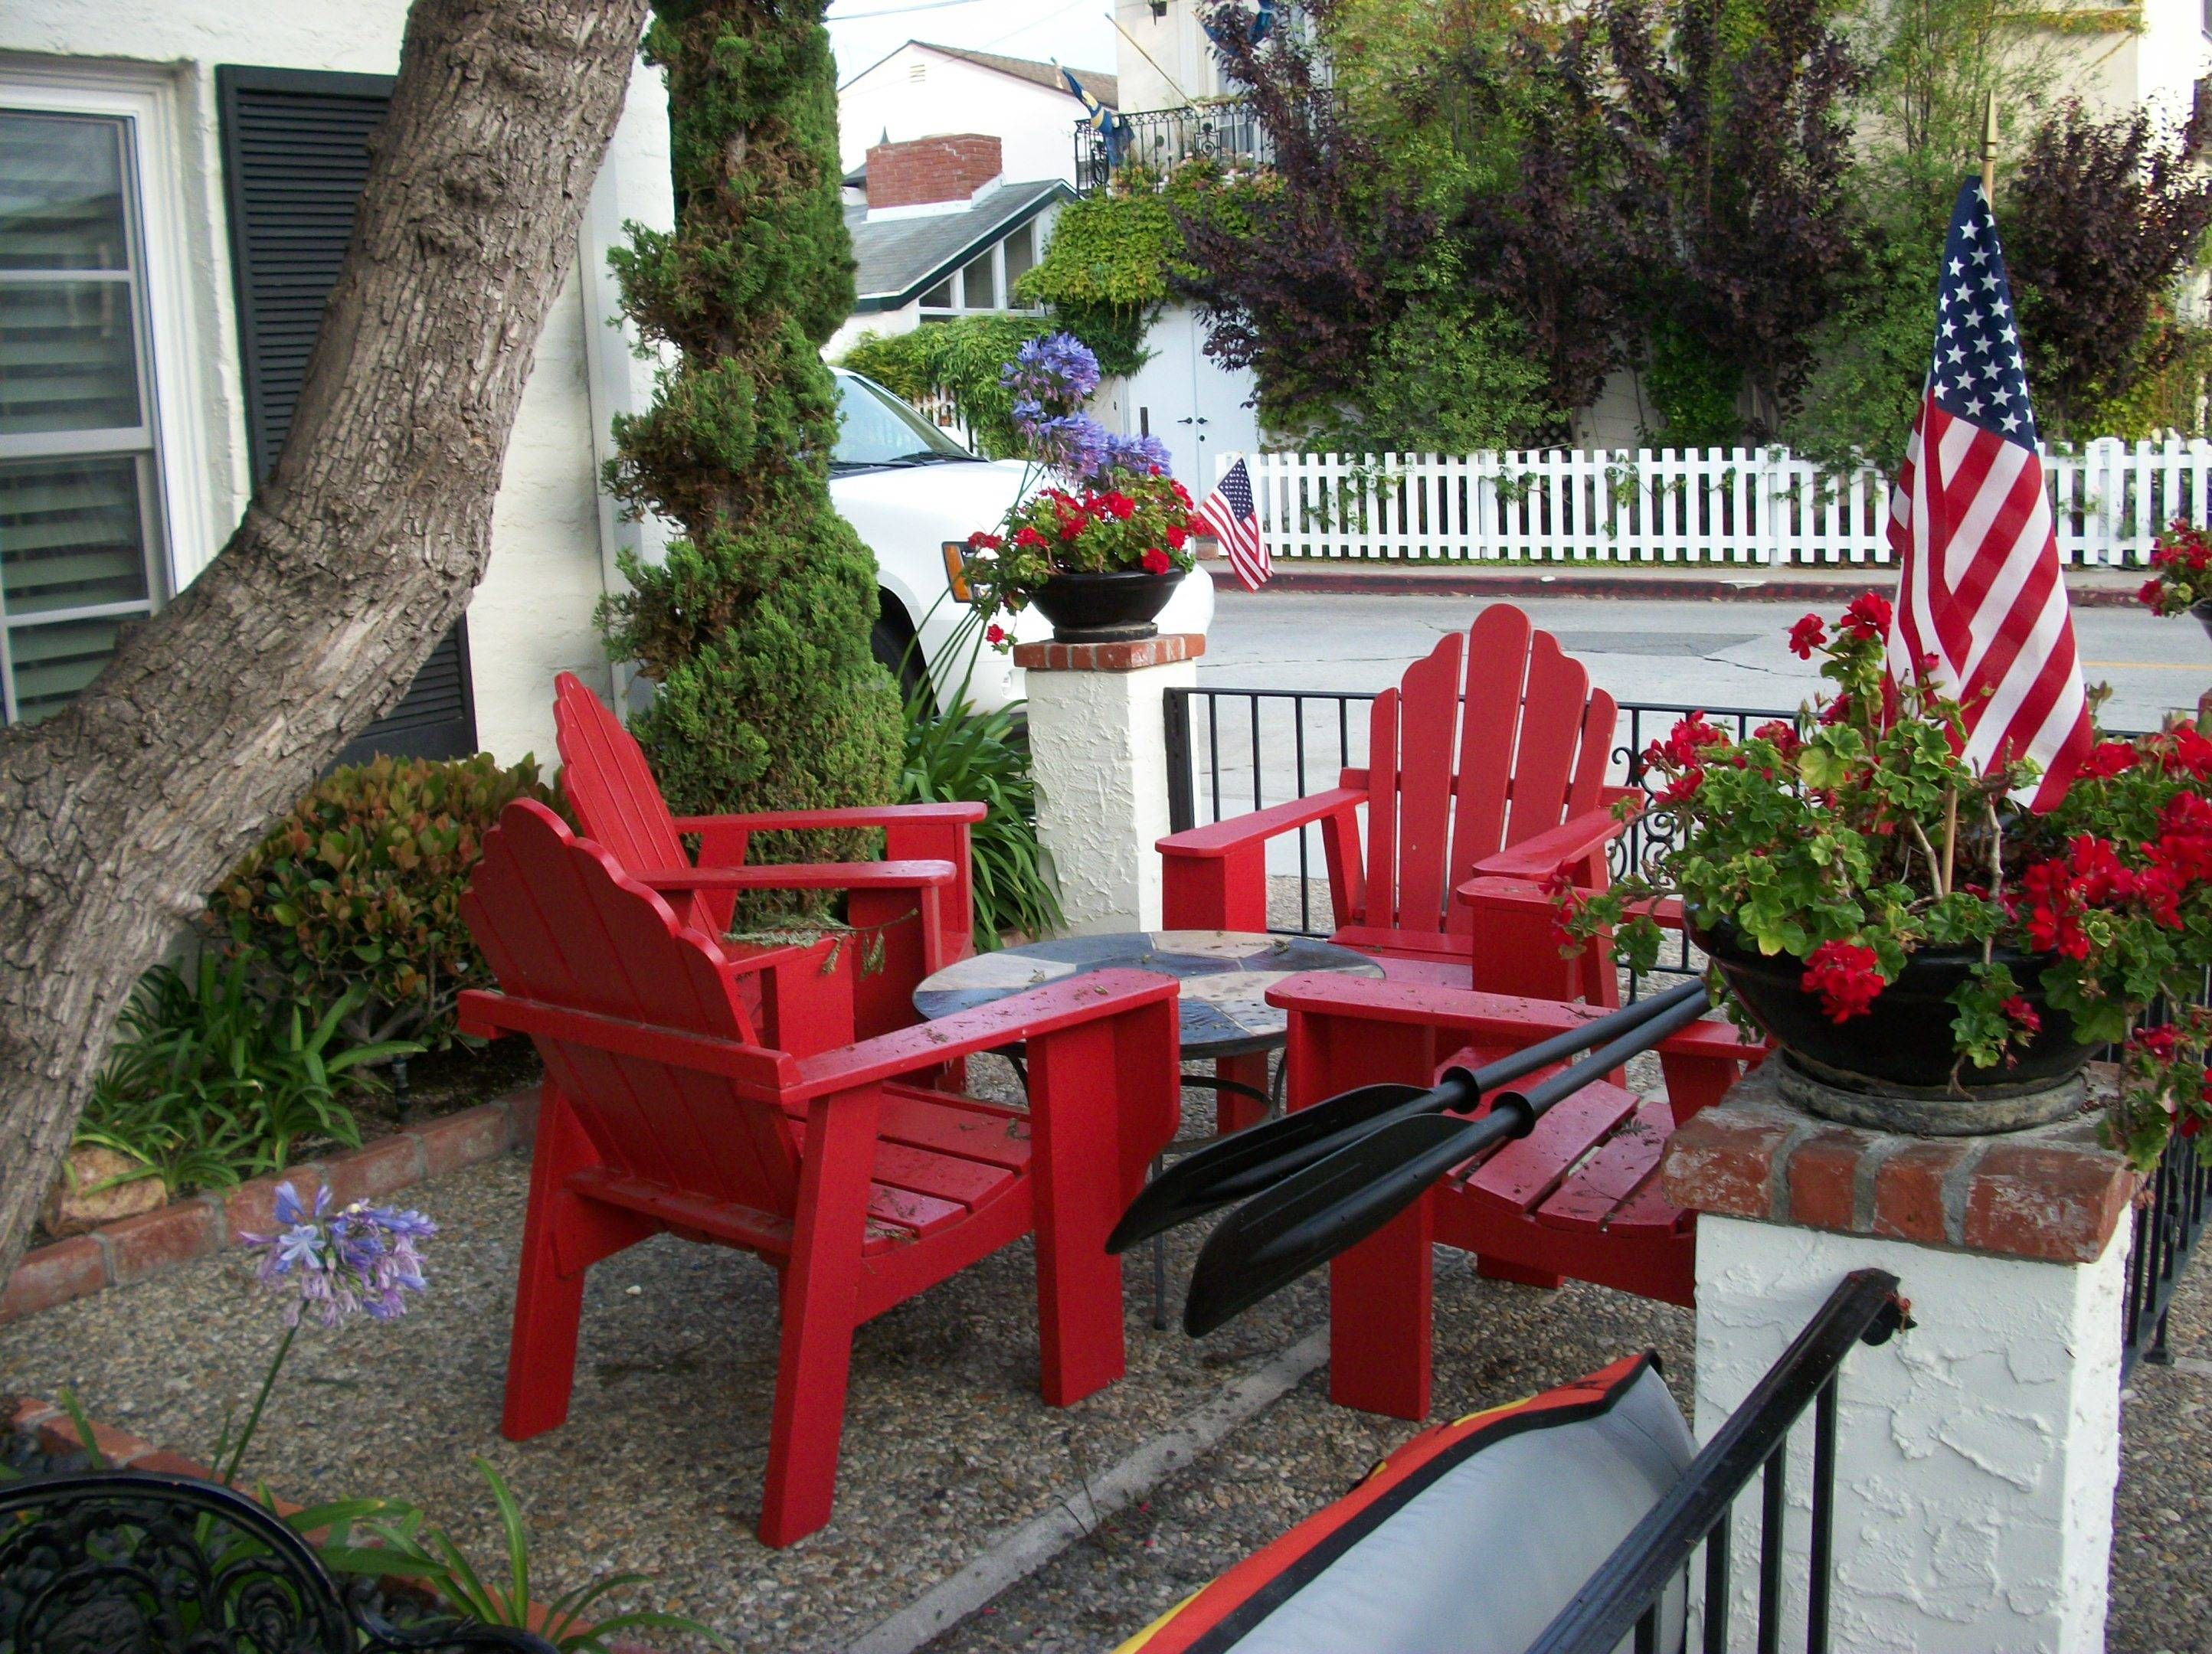 Outdoor decorating ideas for the 4th of july red for 4th of july decorating ideas for outside